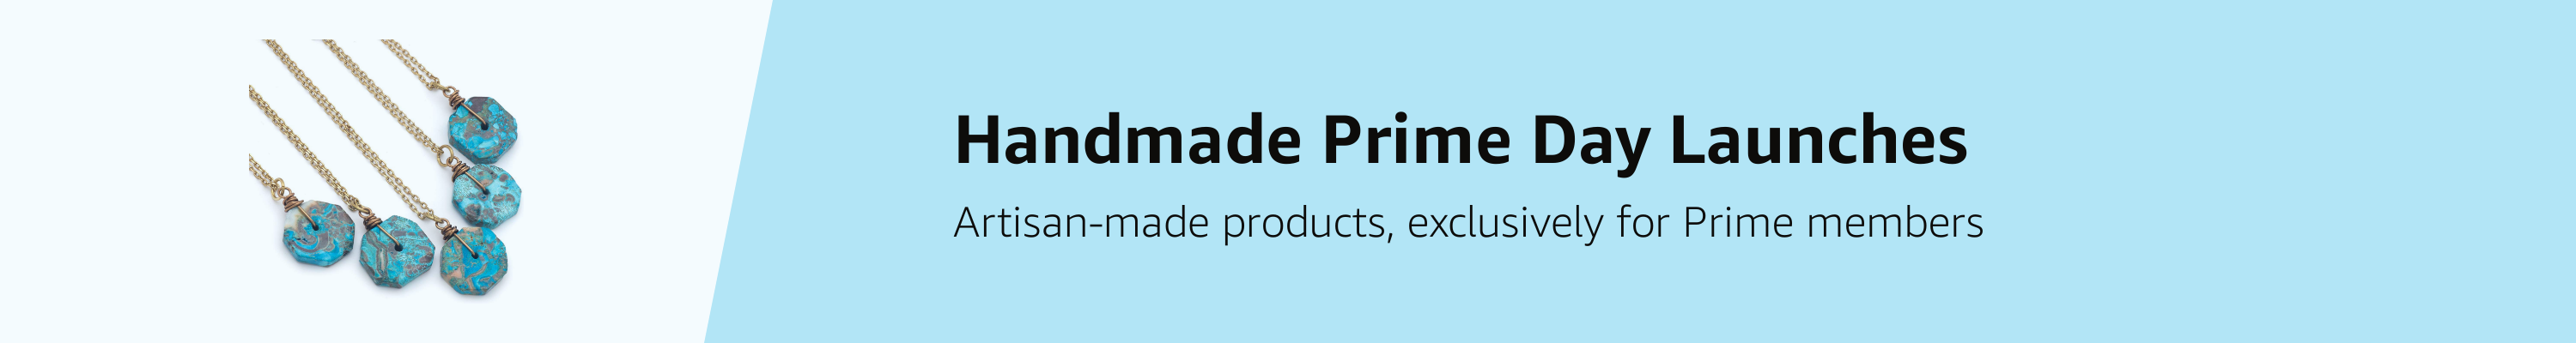 Handmade Prime Day Launches